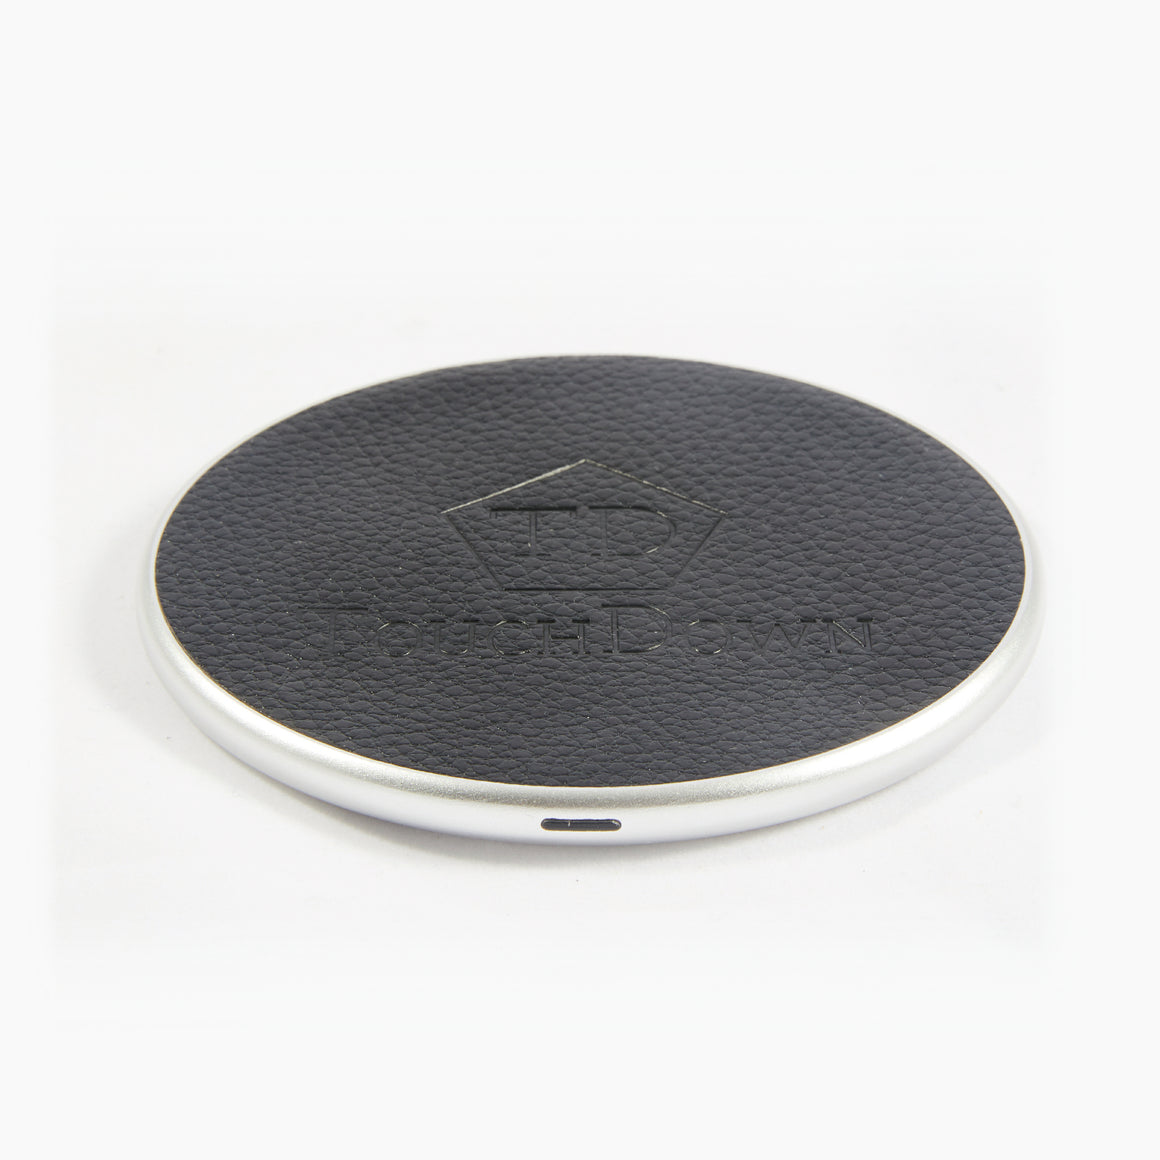 Circular Leather Charging Pad - Business Edition - Black-Charging Pad-TouchDown Charging-Black-TouchDown Charging